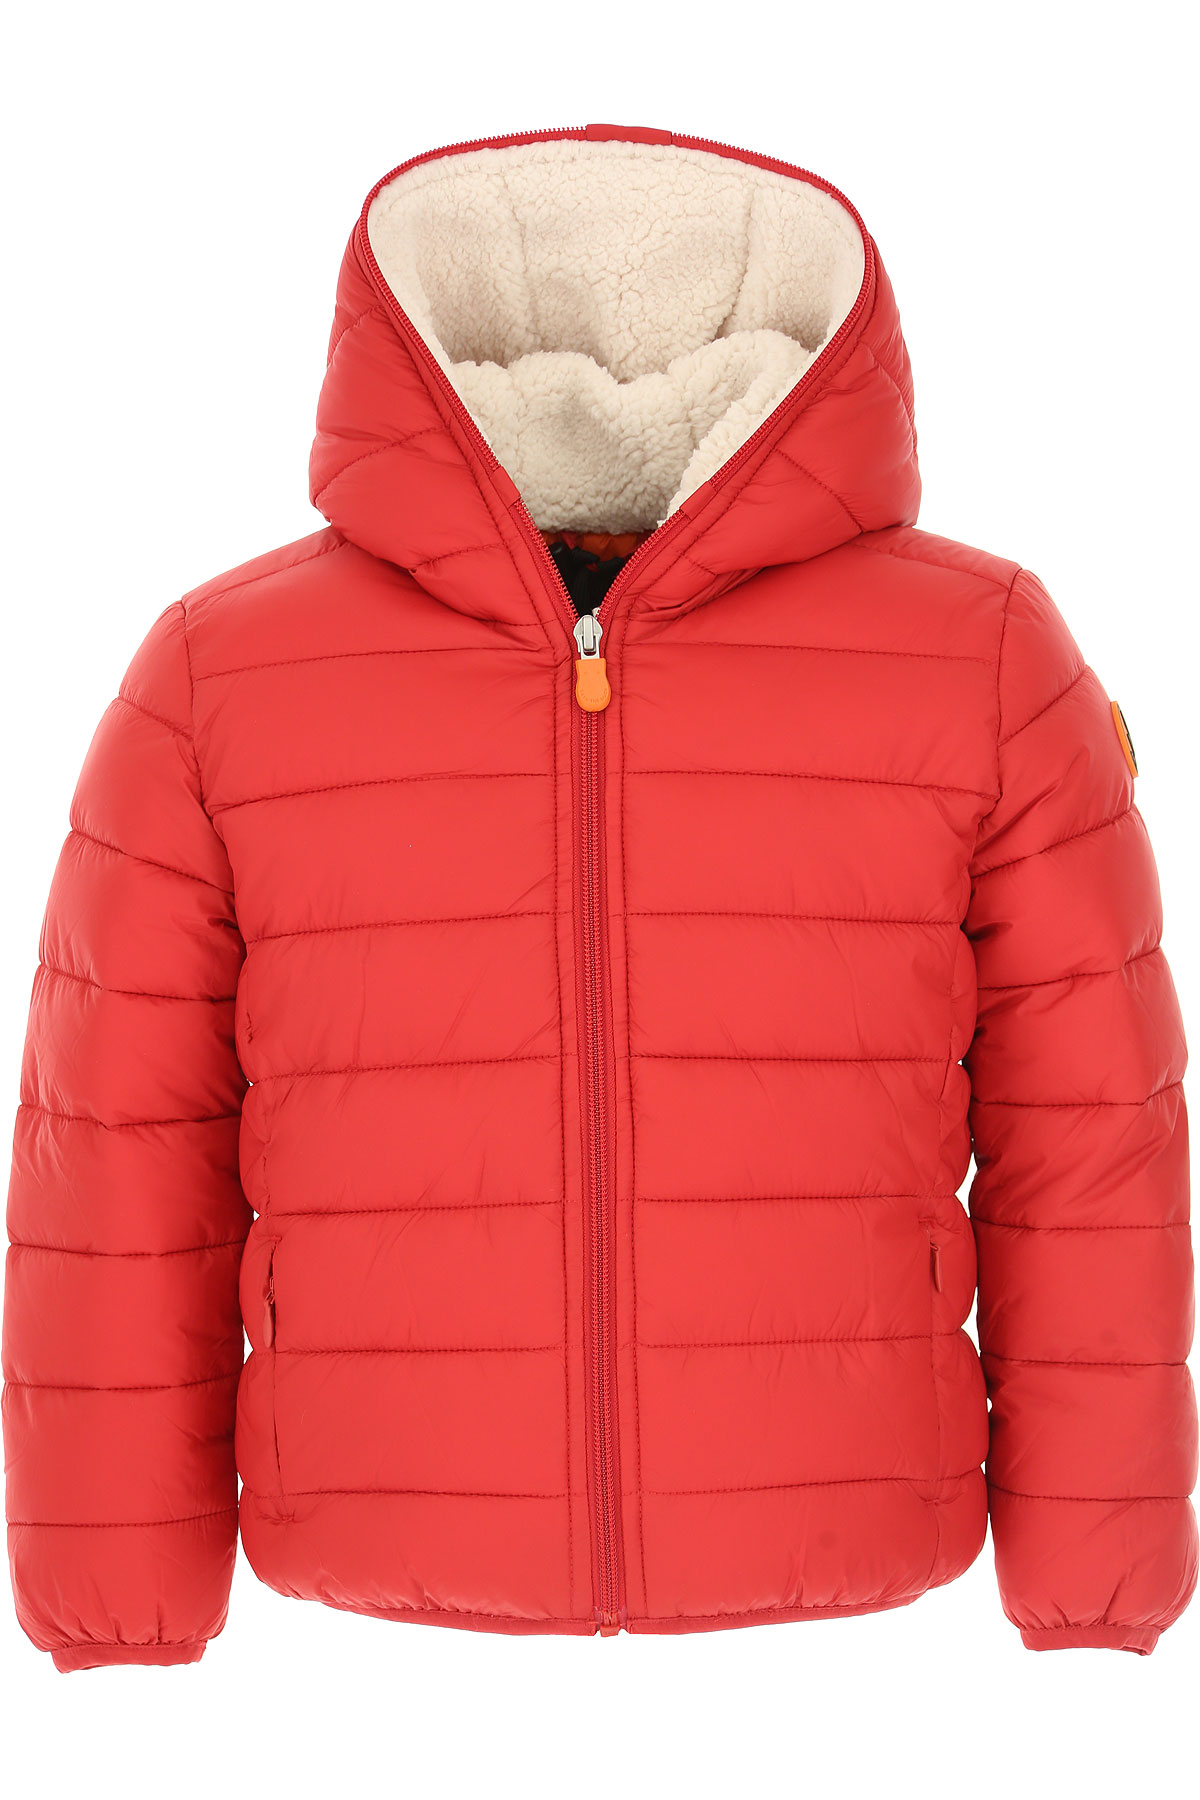 Save the Duck Boys Down Jacket for Kids, Puffer Ski Jacket On Sale, Red, Nylon, 2019, 10Y 6Y